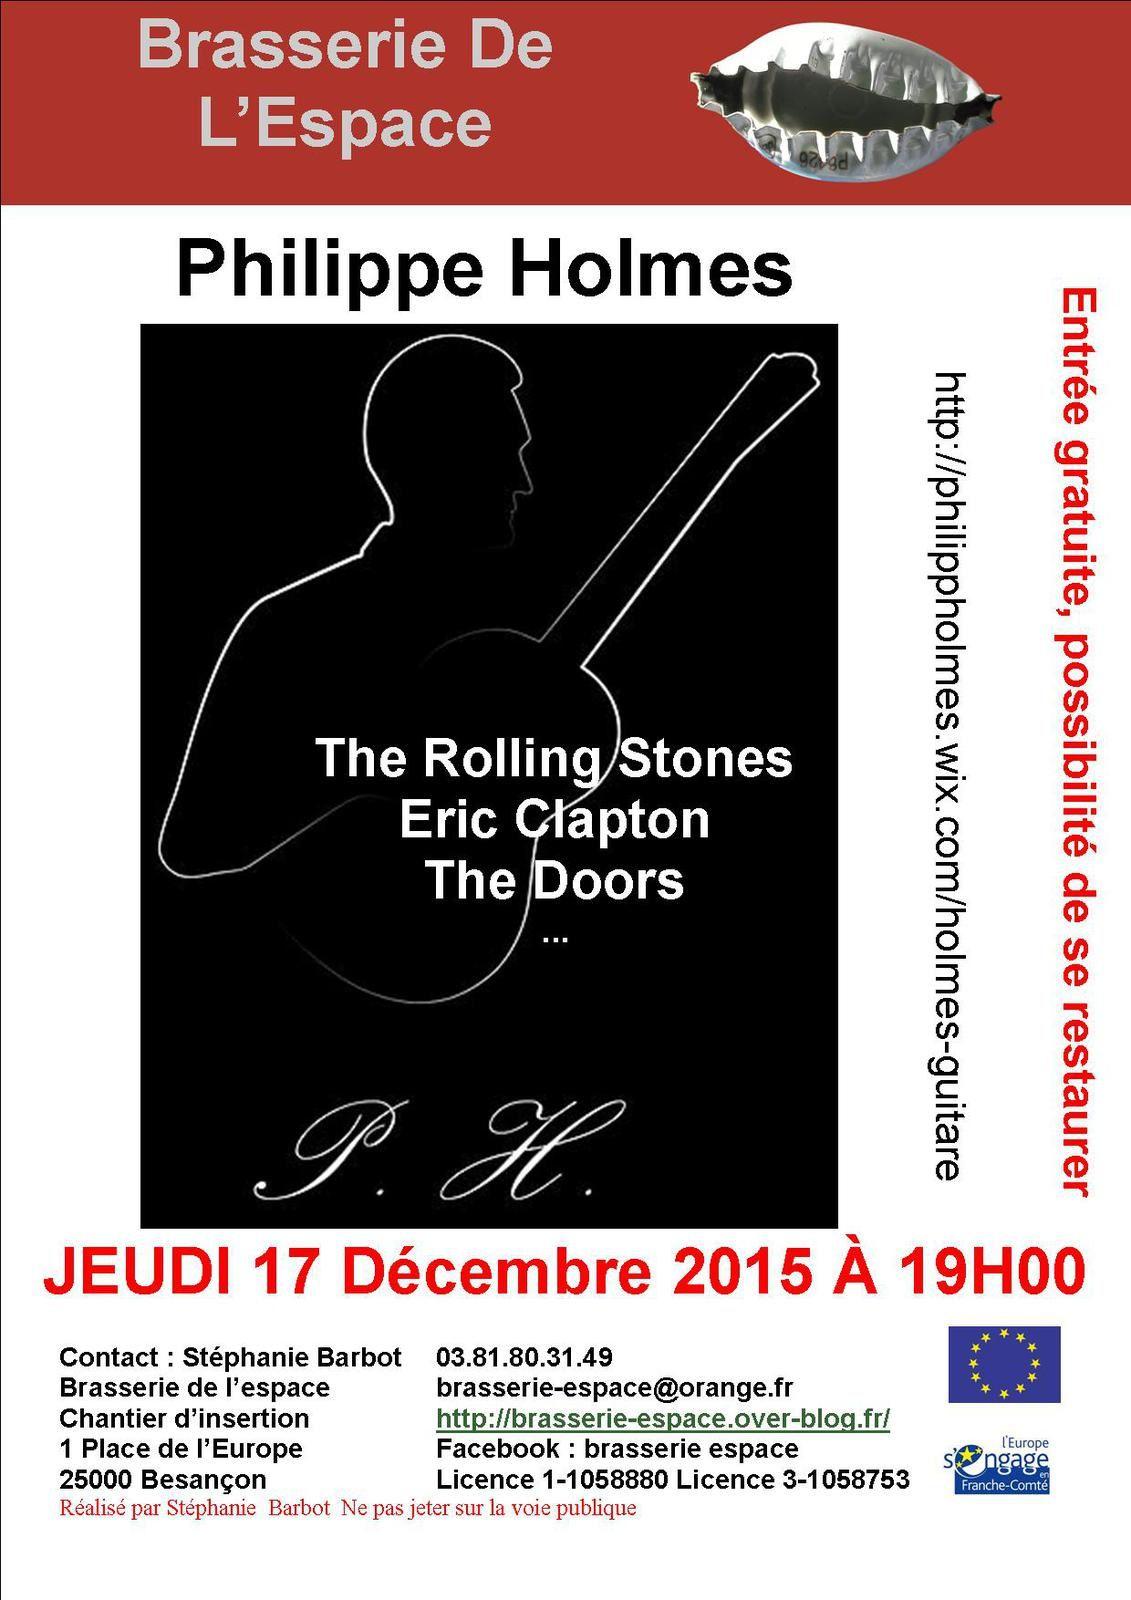 Philippe Holmes chante The Rolling Stones, The Doors... 17 décembre 2015